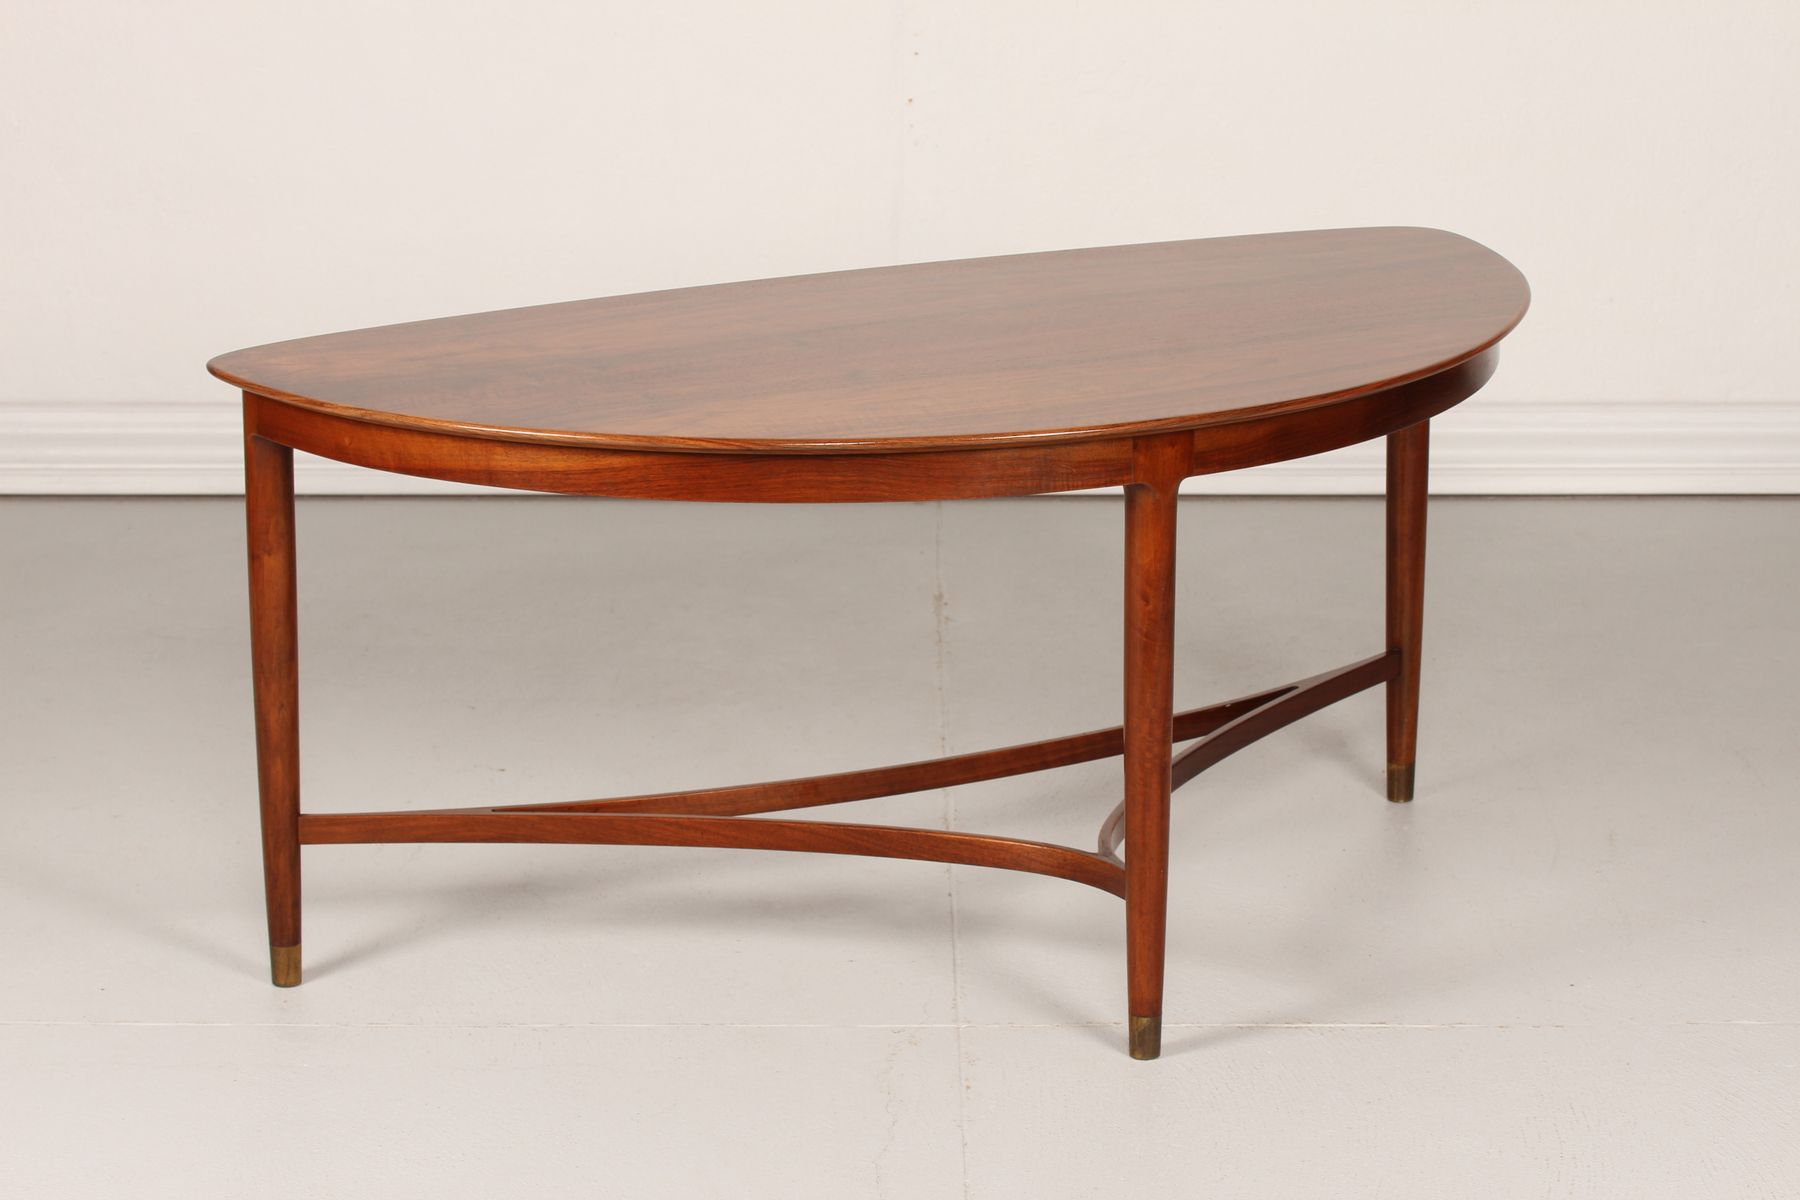 Danish Triangular Coffee Table 1950s for sale at Pamono